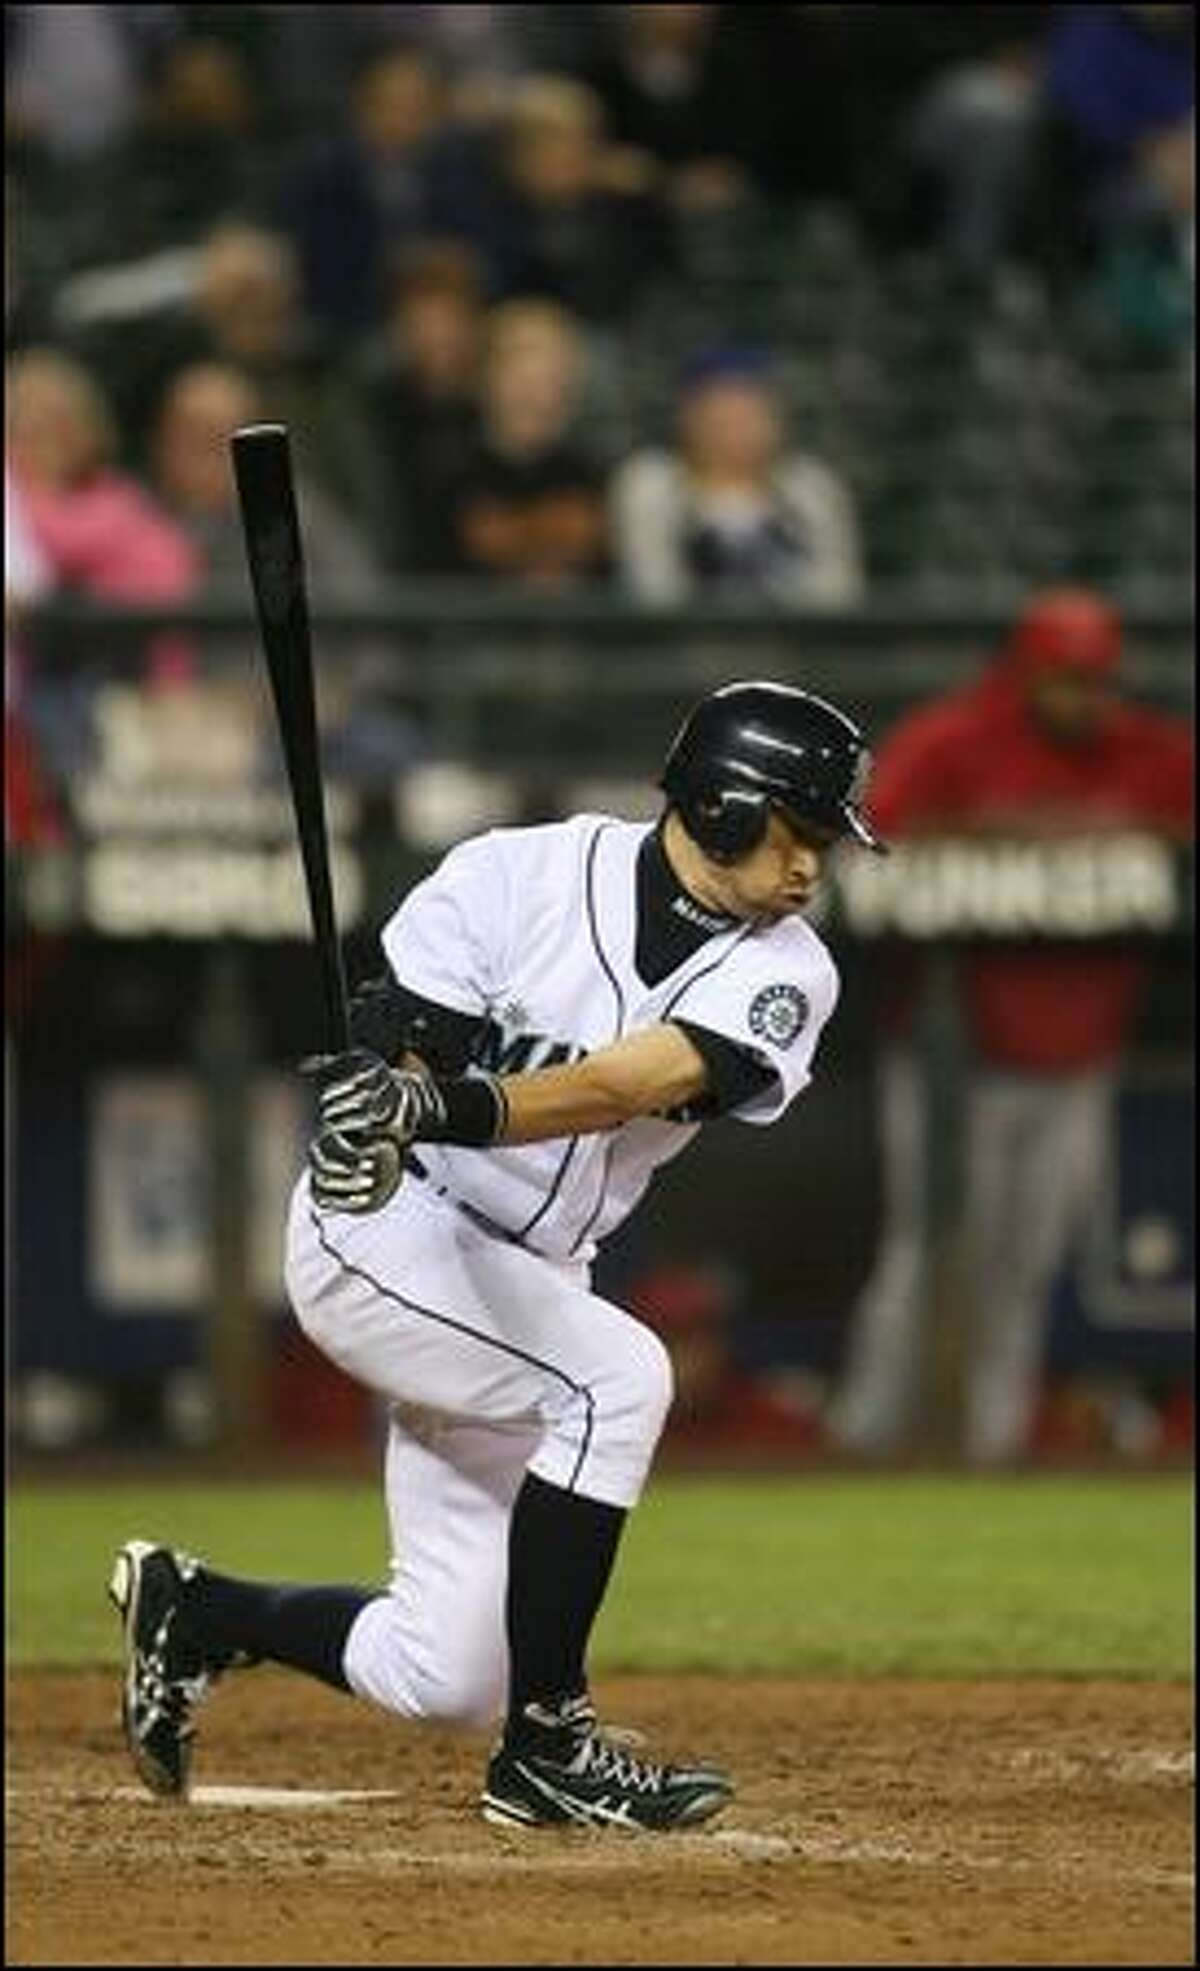 Ichiro Suzuki strikes out with the bases loaded in the eighth inning. The Mariners failed to score despite loading the bases with one out.